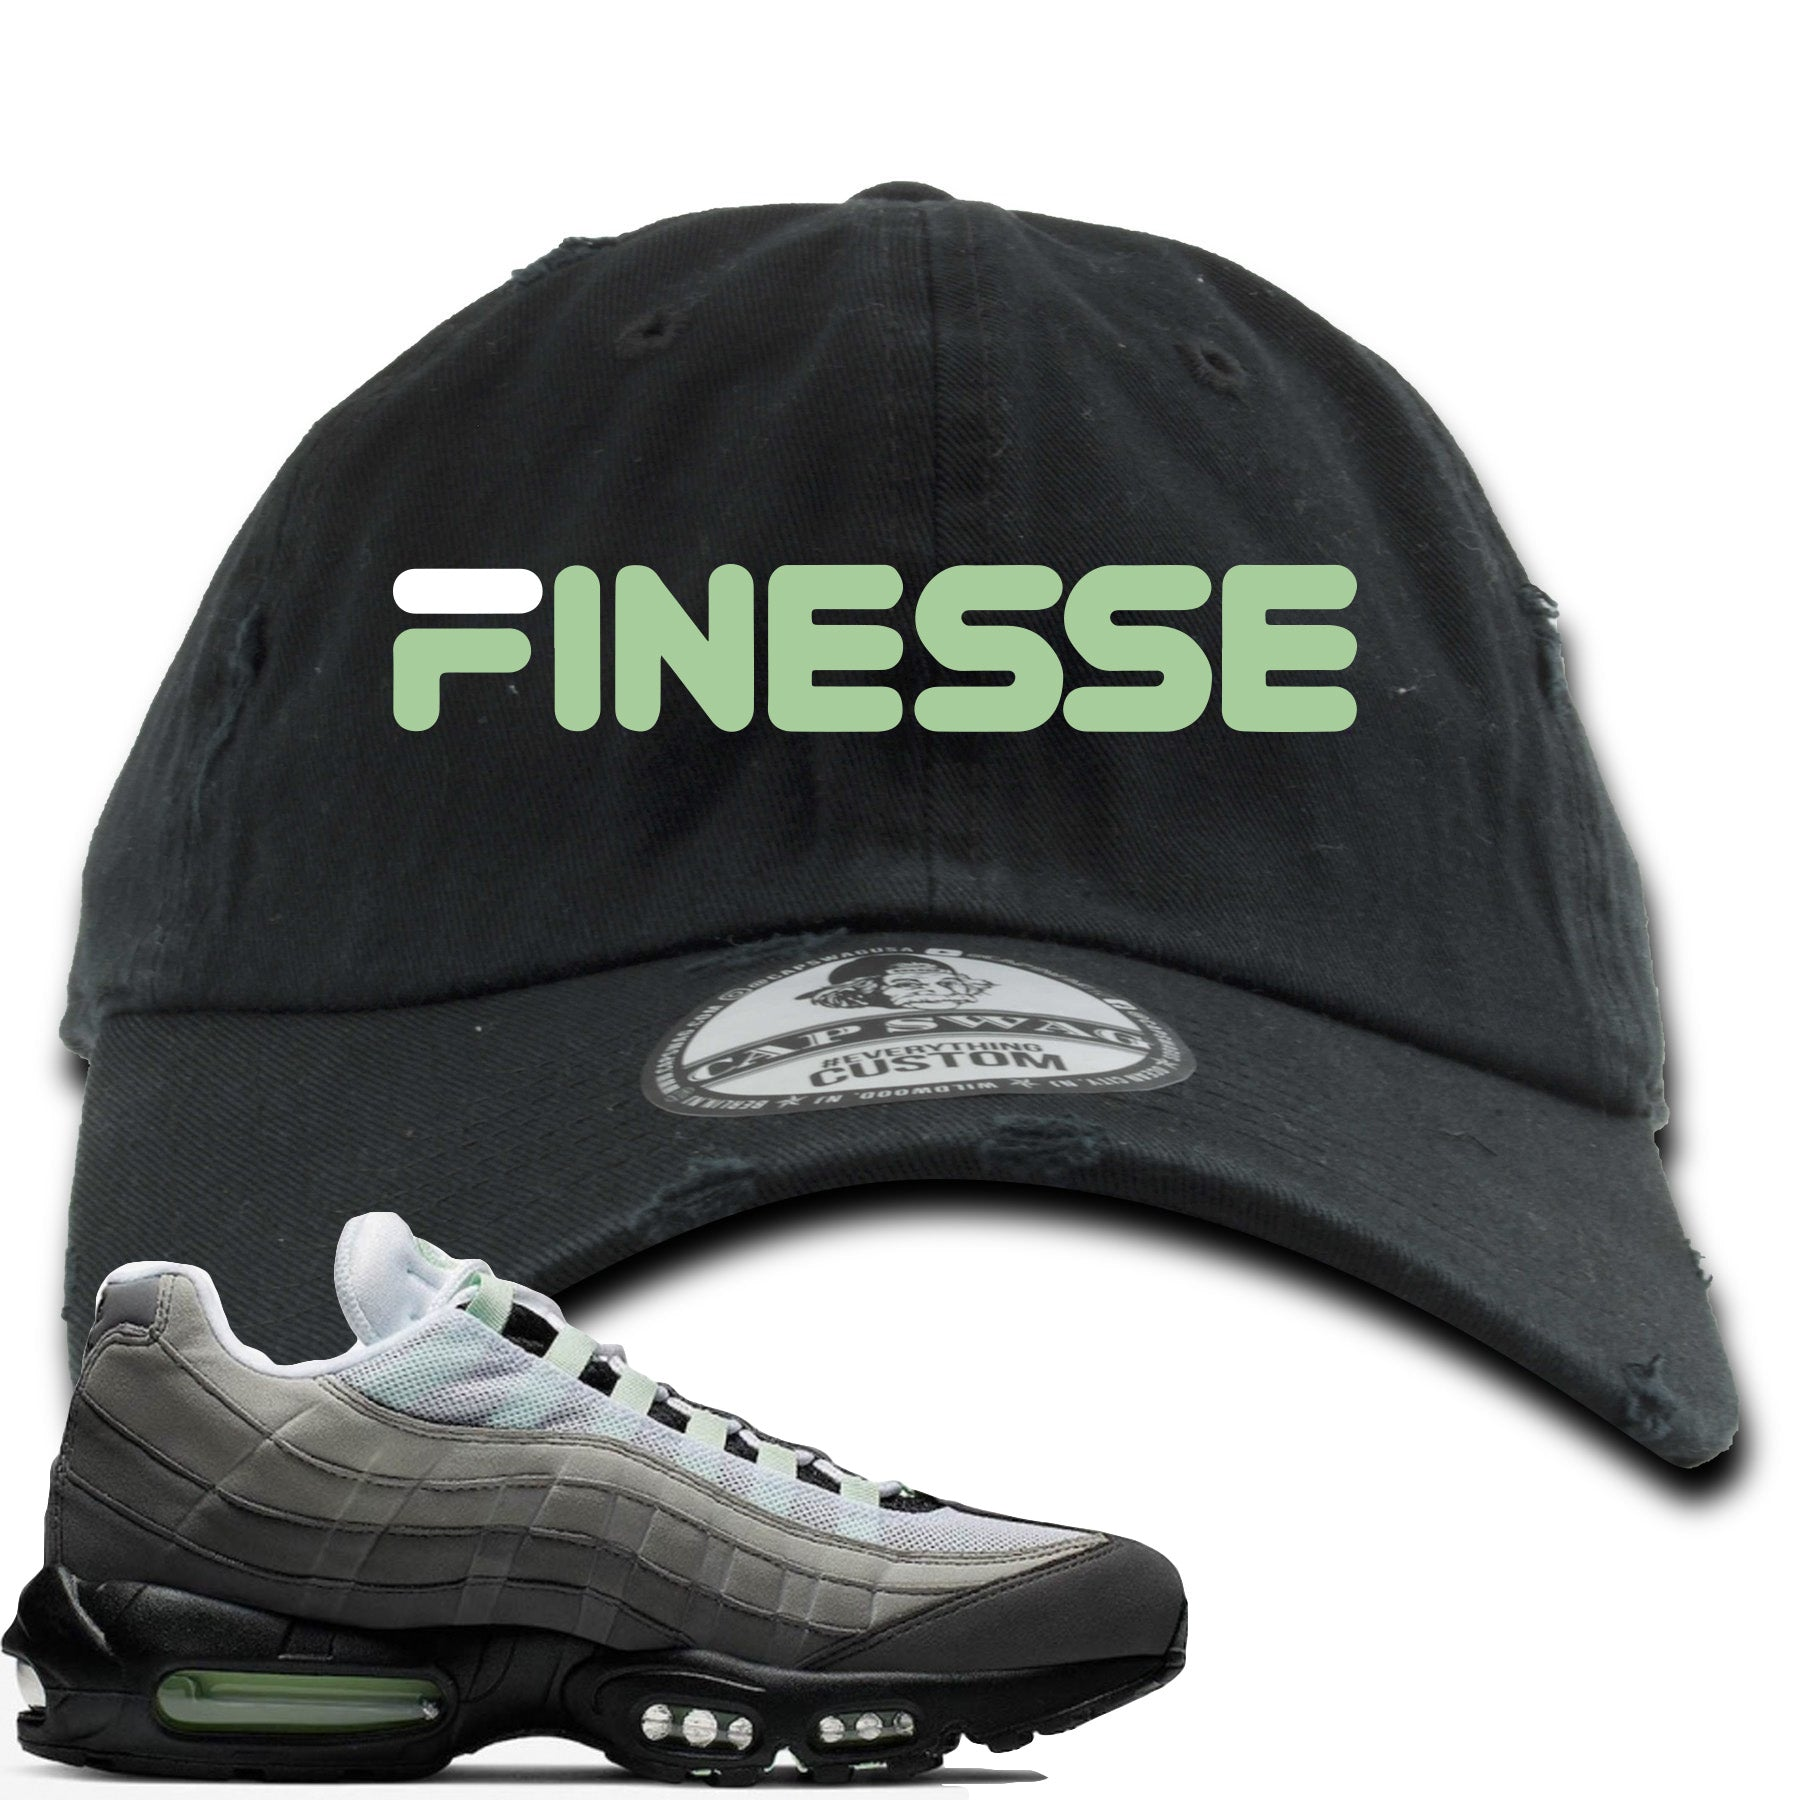 sports shoes 1f30b 04920 Nike Air Max 95 Fresh Mint Sneaker Match Finesse Black Distressed Dad Hat